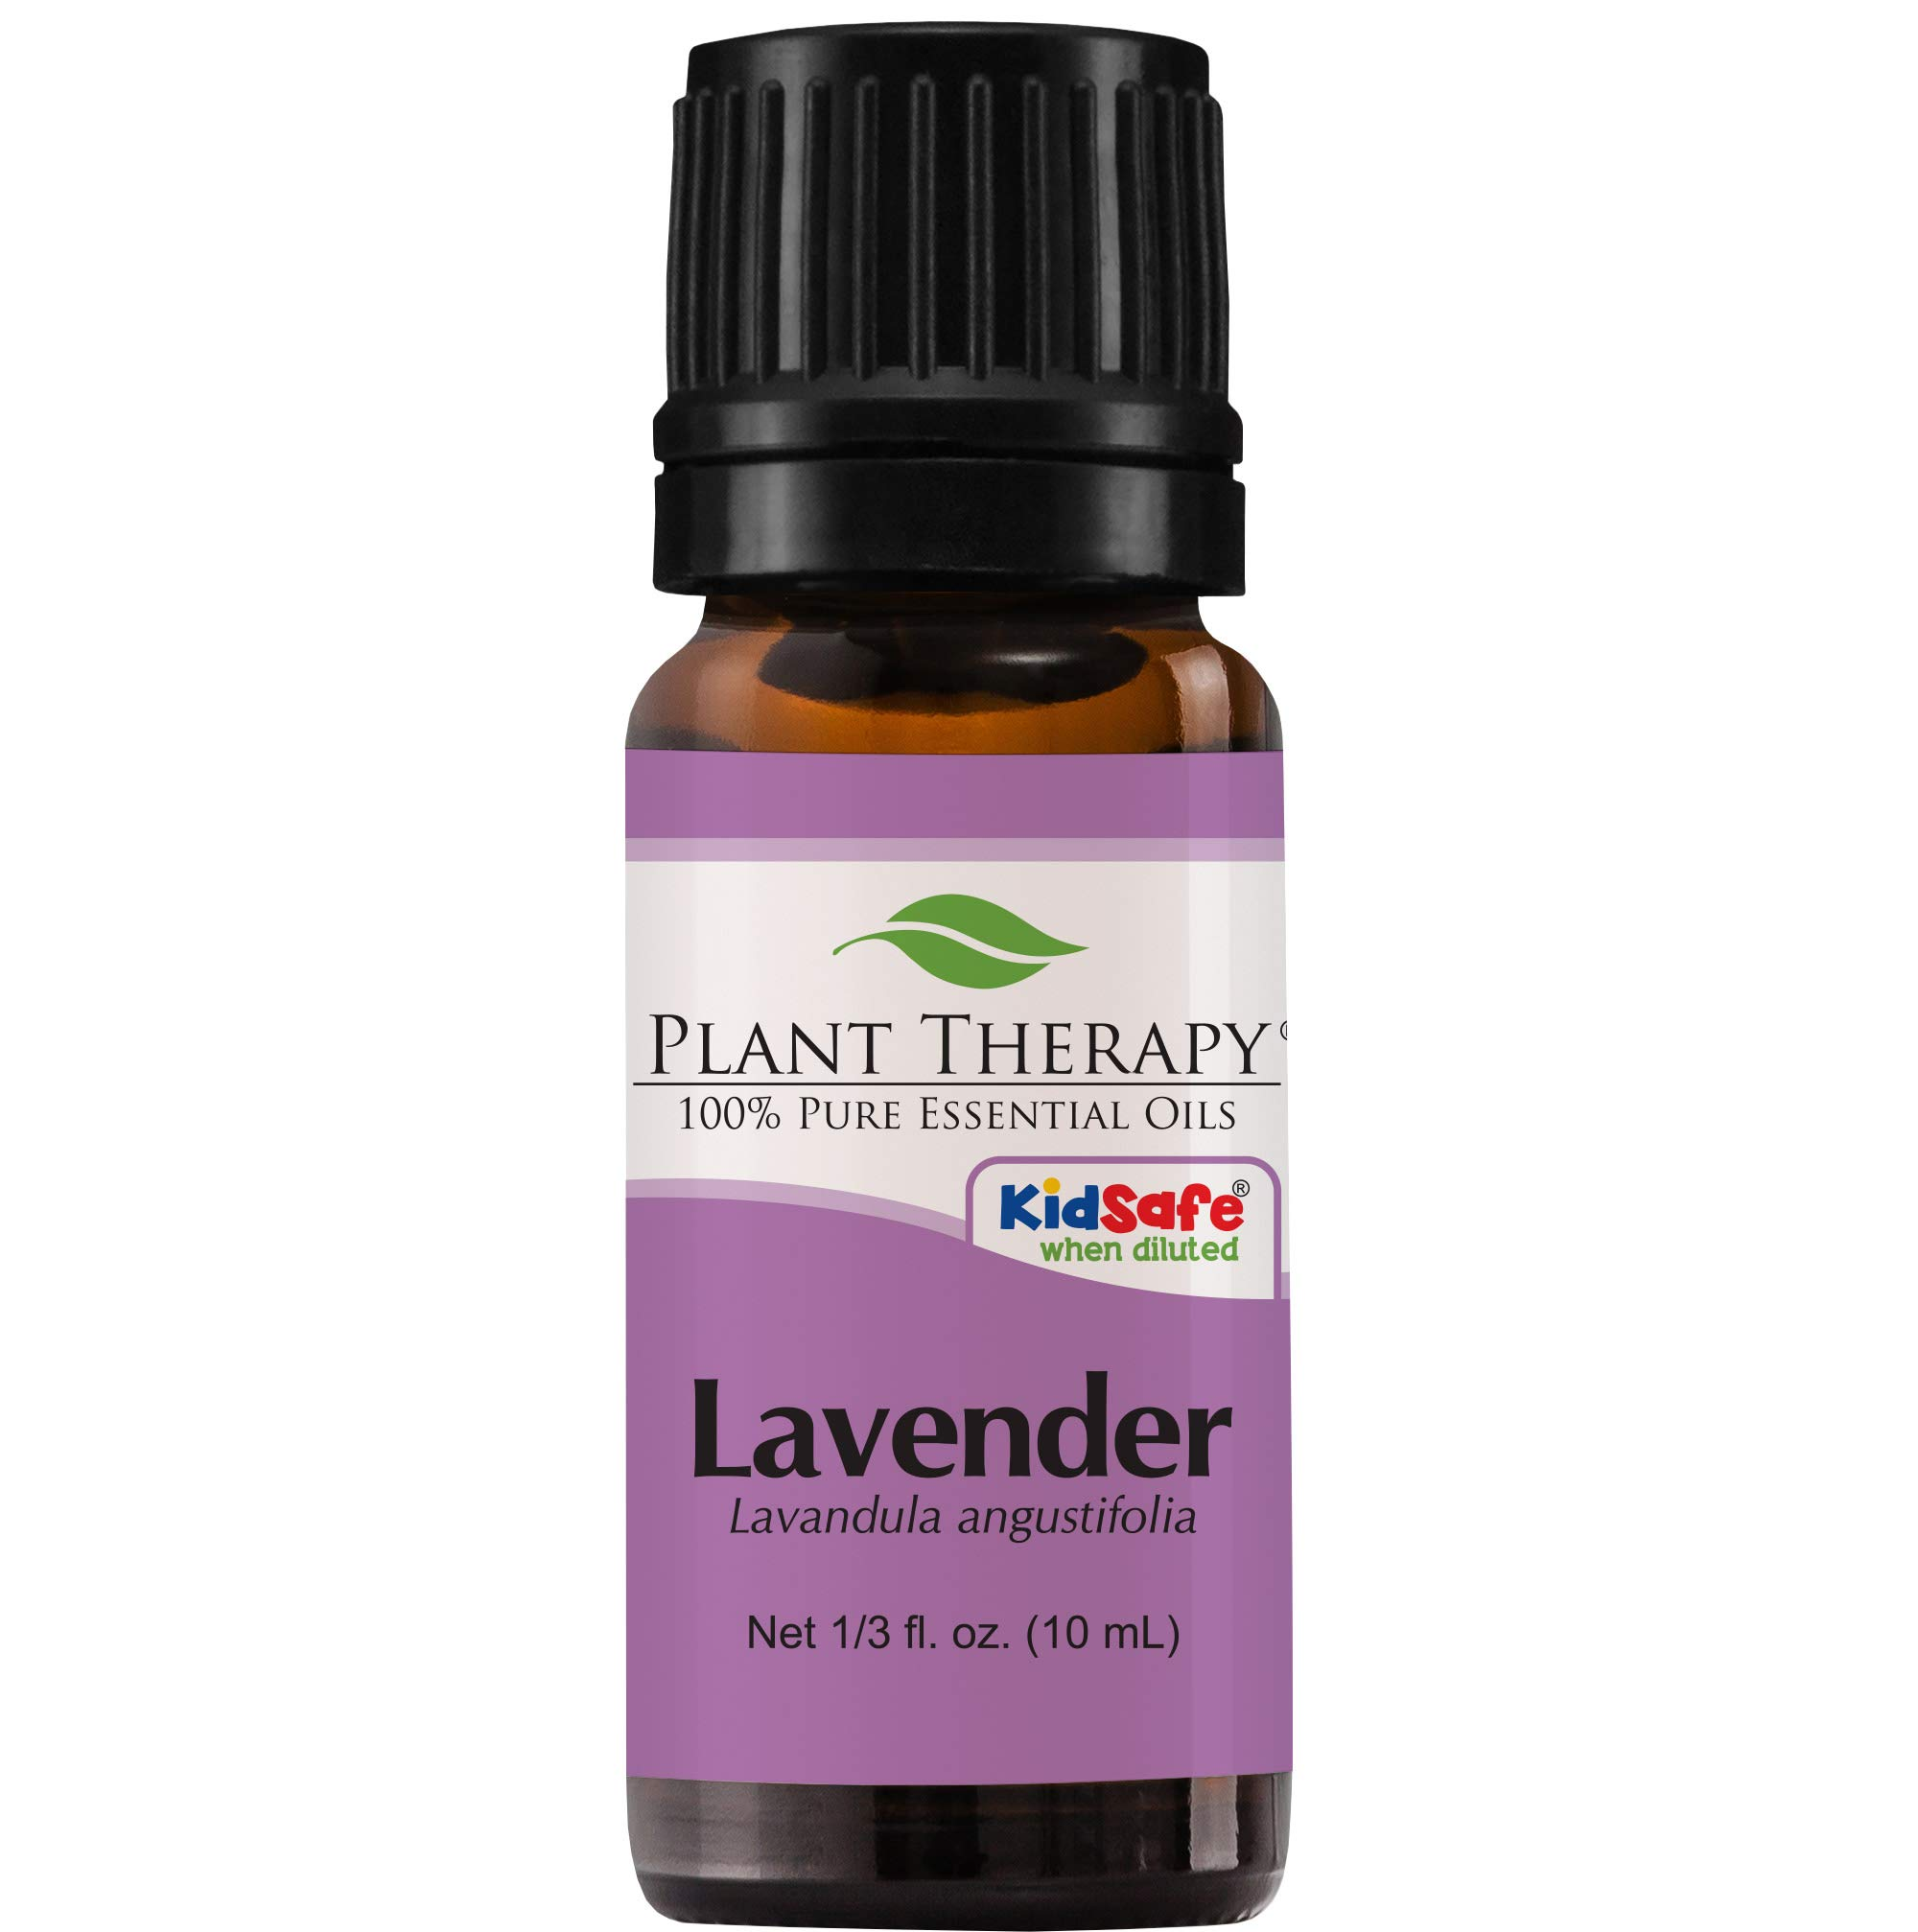 e061ea153716c7 Plant Therapy Lavender Essential Oil | 100% Pure, Undiluted, Natural  Aromatherapy, Therapeutic